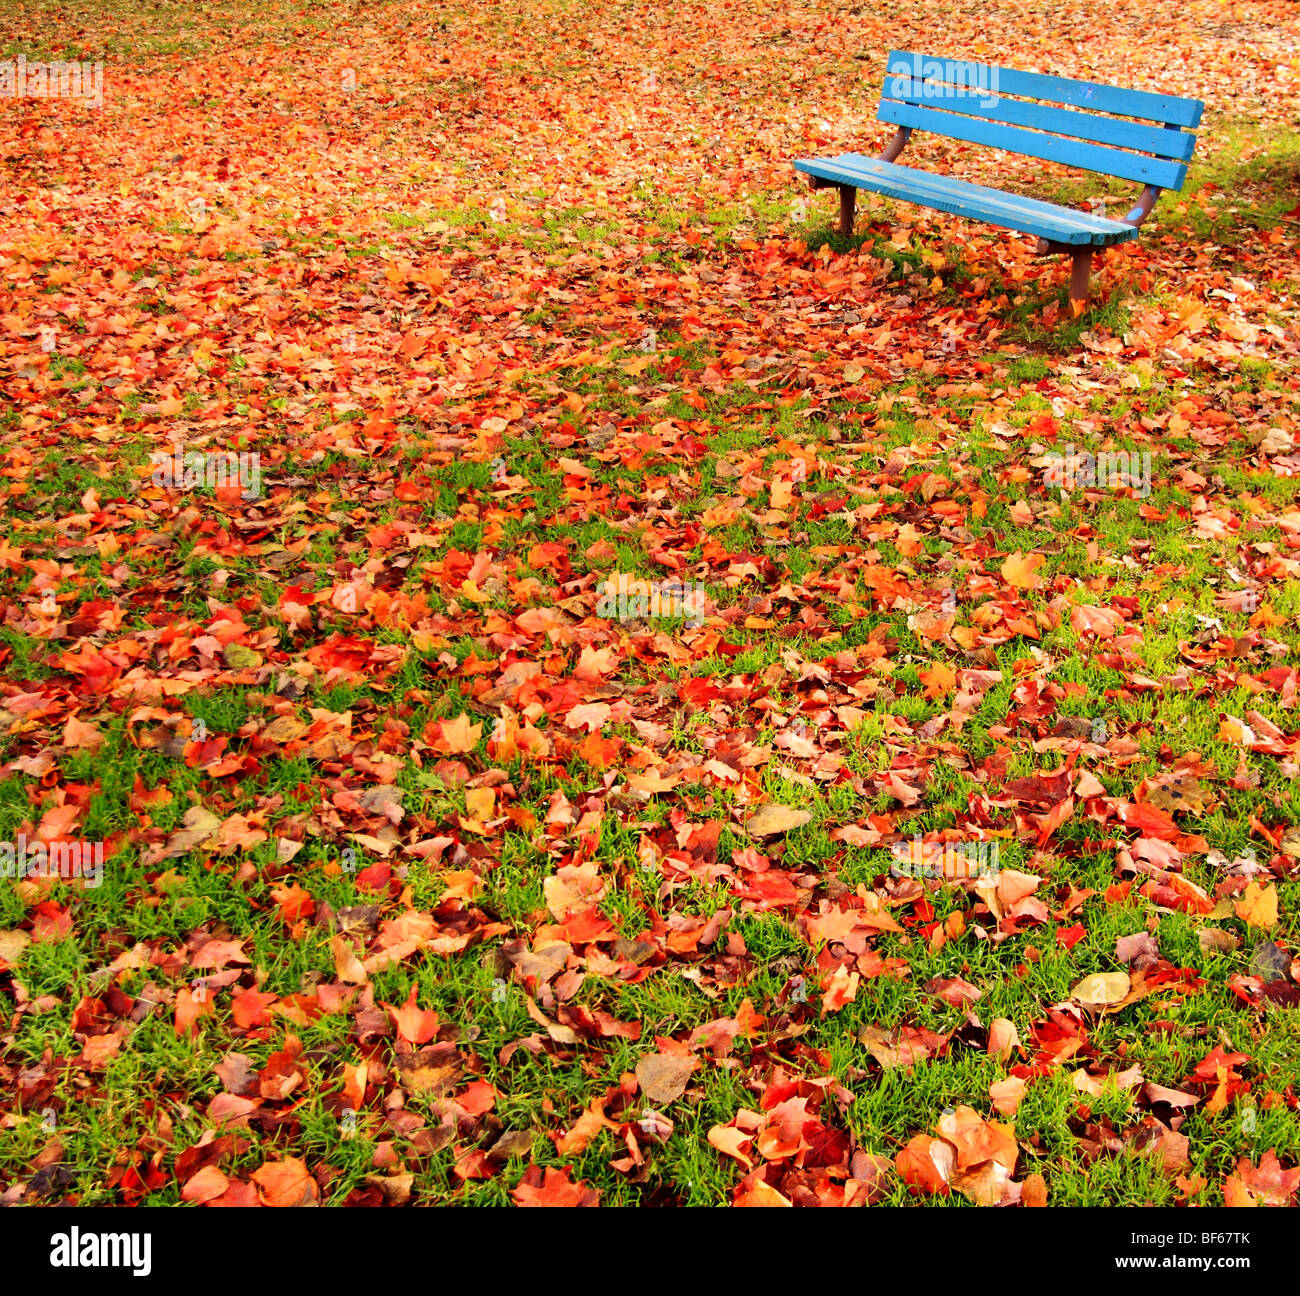 A lone, blue bench in a park surrounded by autumn leaves. - Stock Image